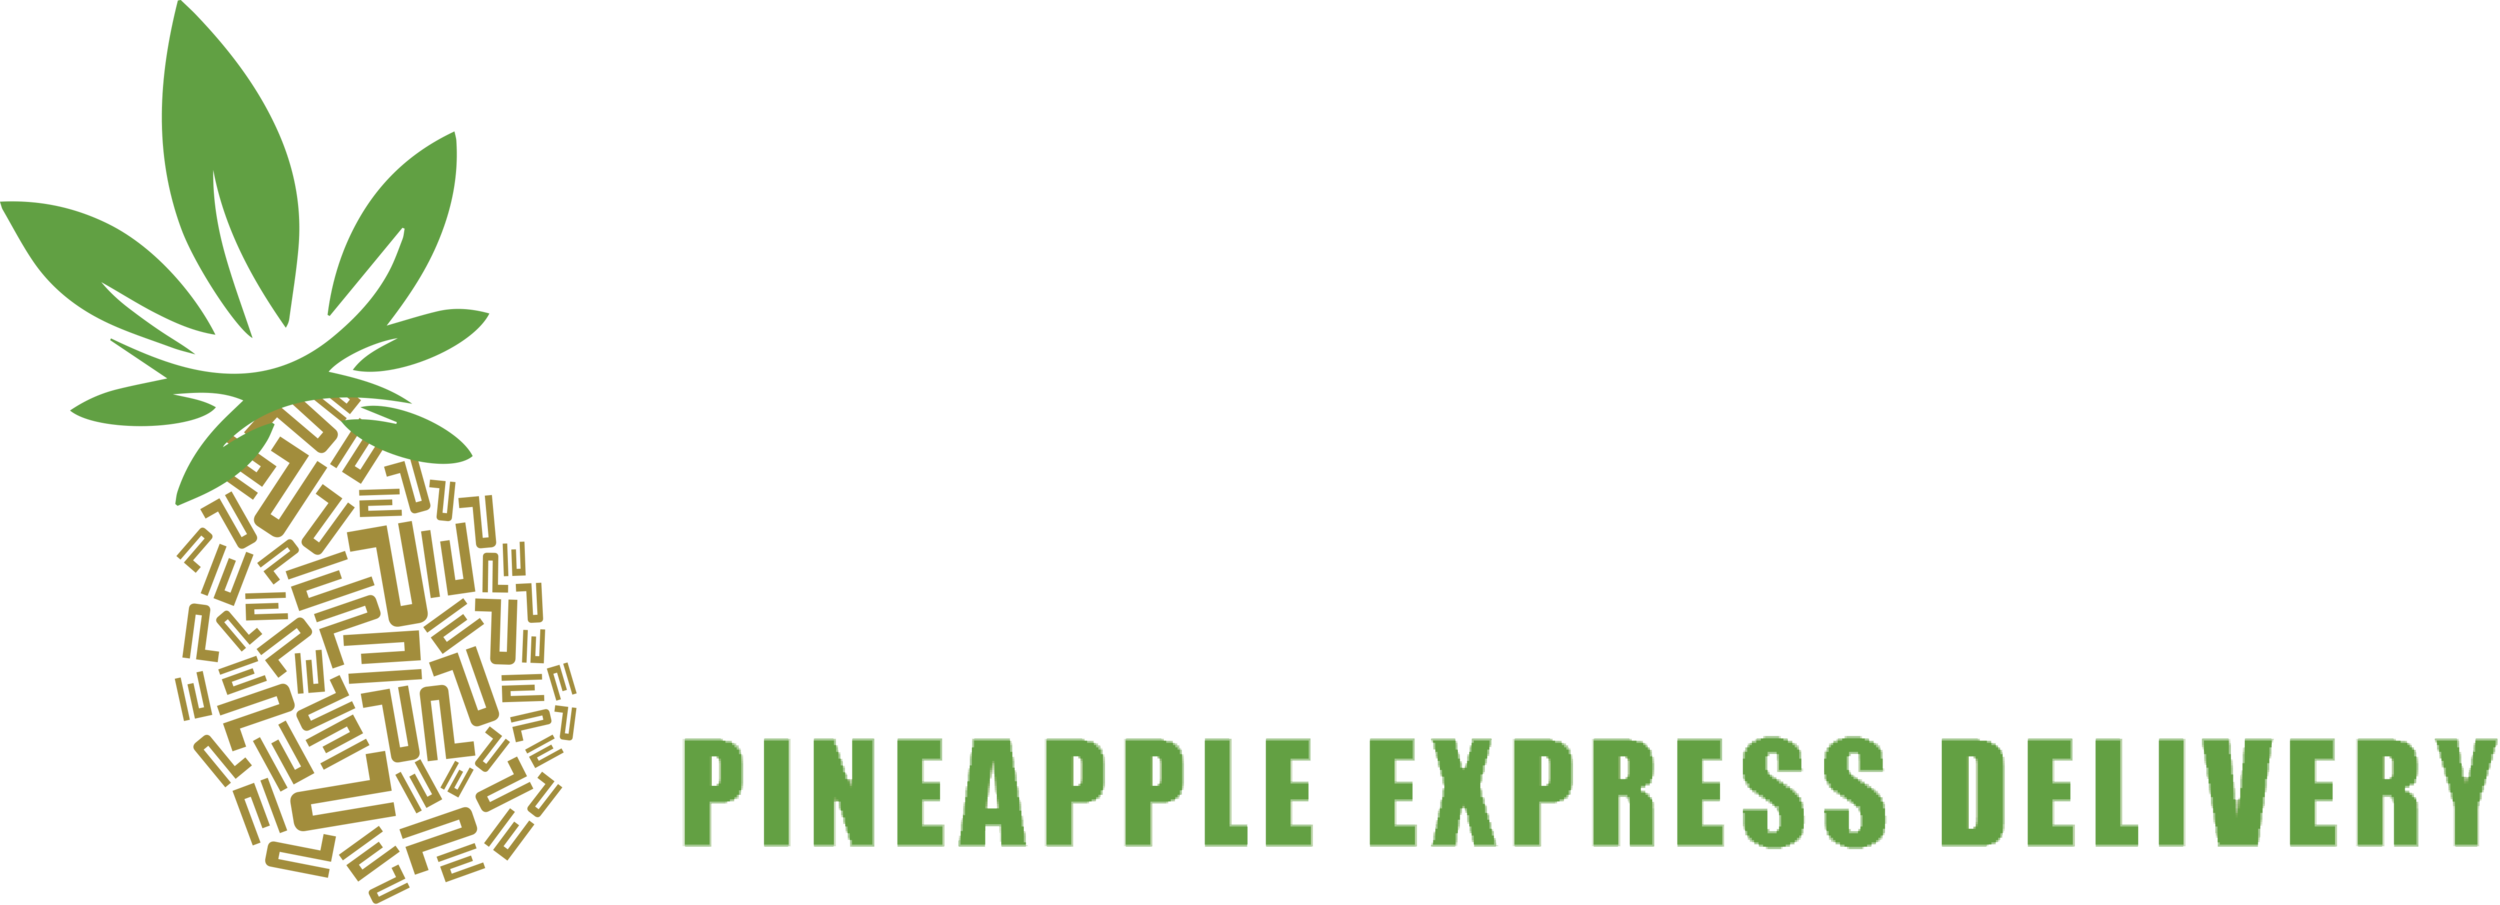 Pineapple Express Final Logo_White.png